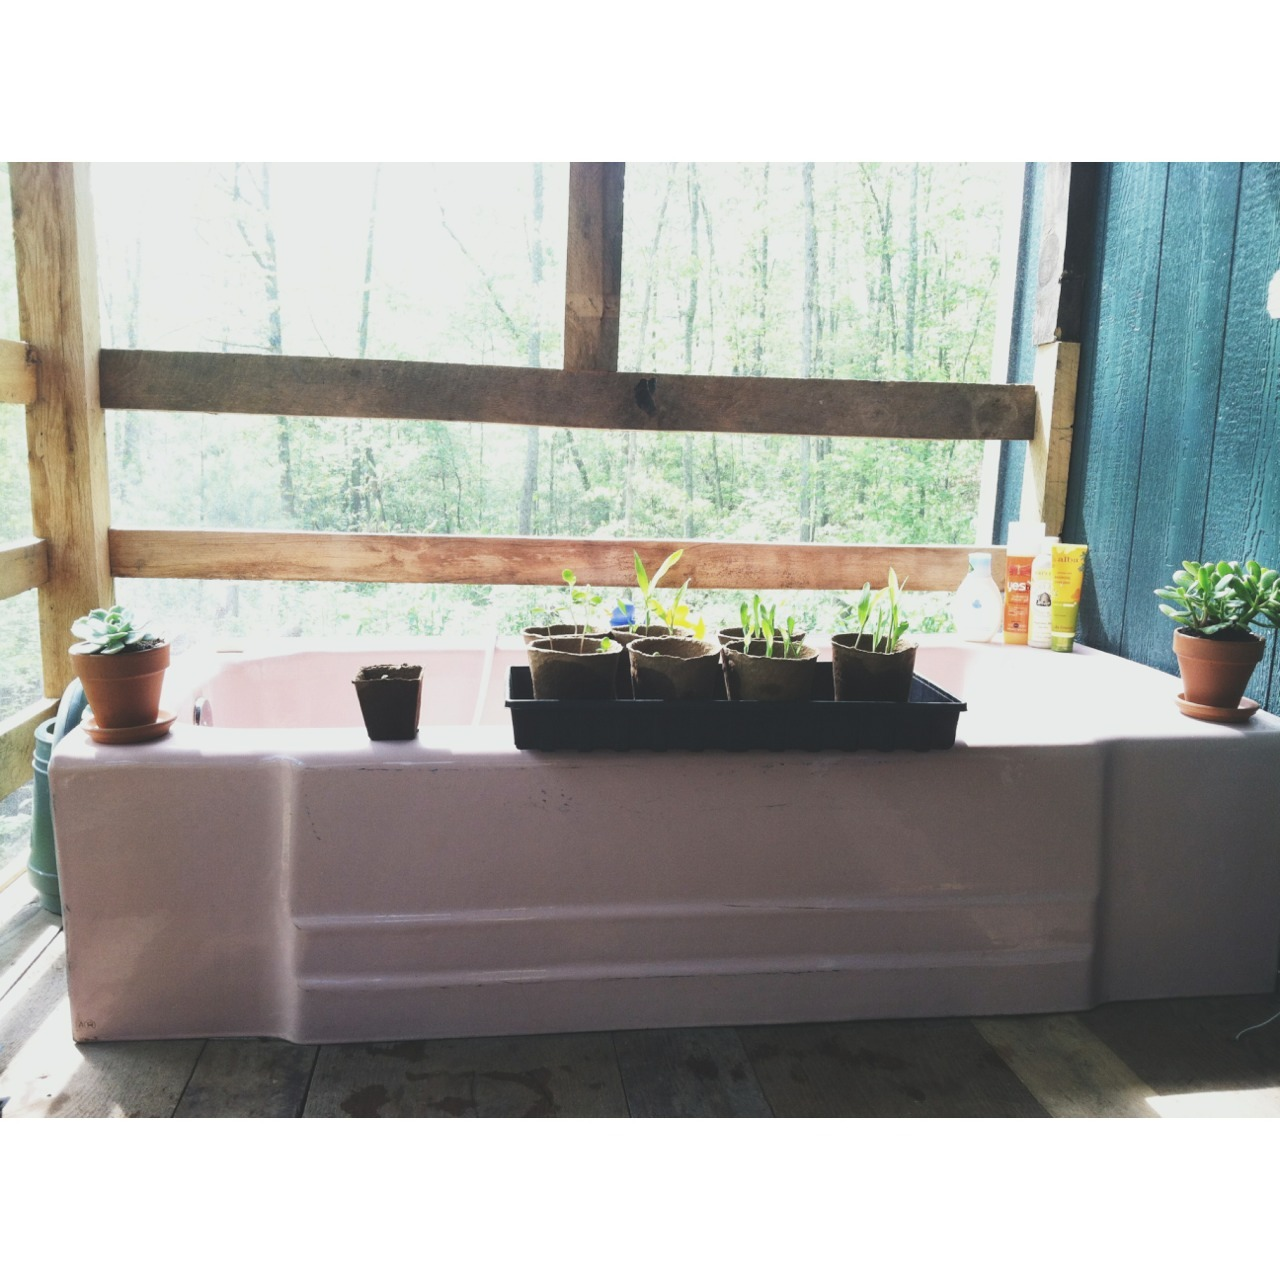 Seedlings sunbathing on the porch. Watermelon + corn + sunflowers